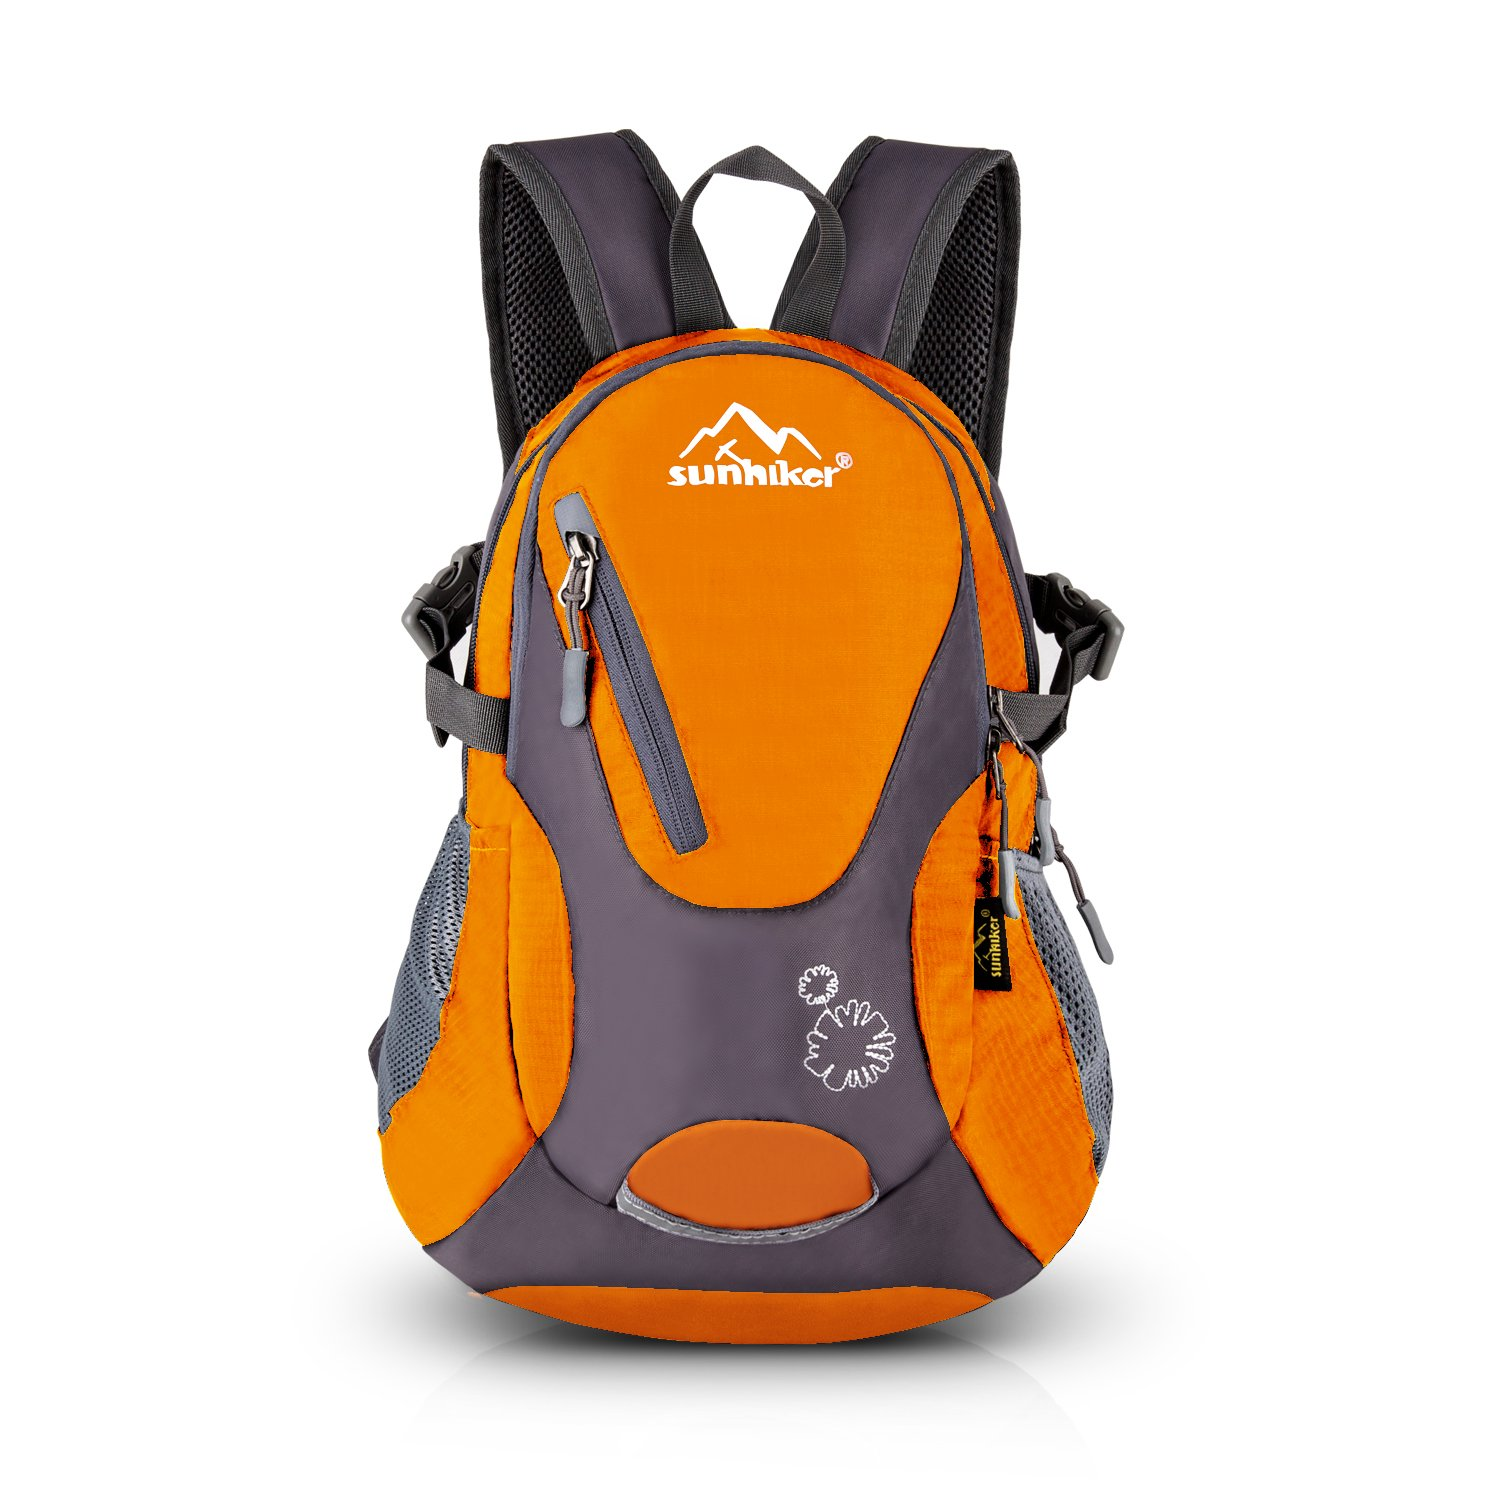 Sunhiker Cycling Hiking Backpack Water Resistant Travel Backpack Lightweight Small Daypack M0714 (Orange) by Sunhiker